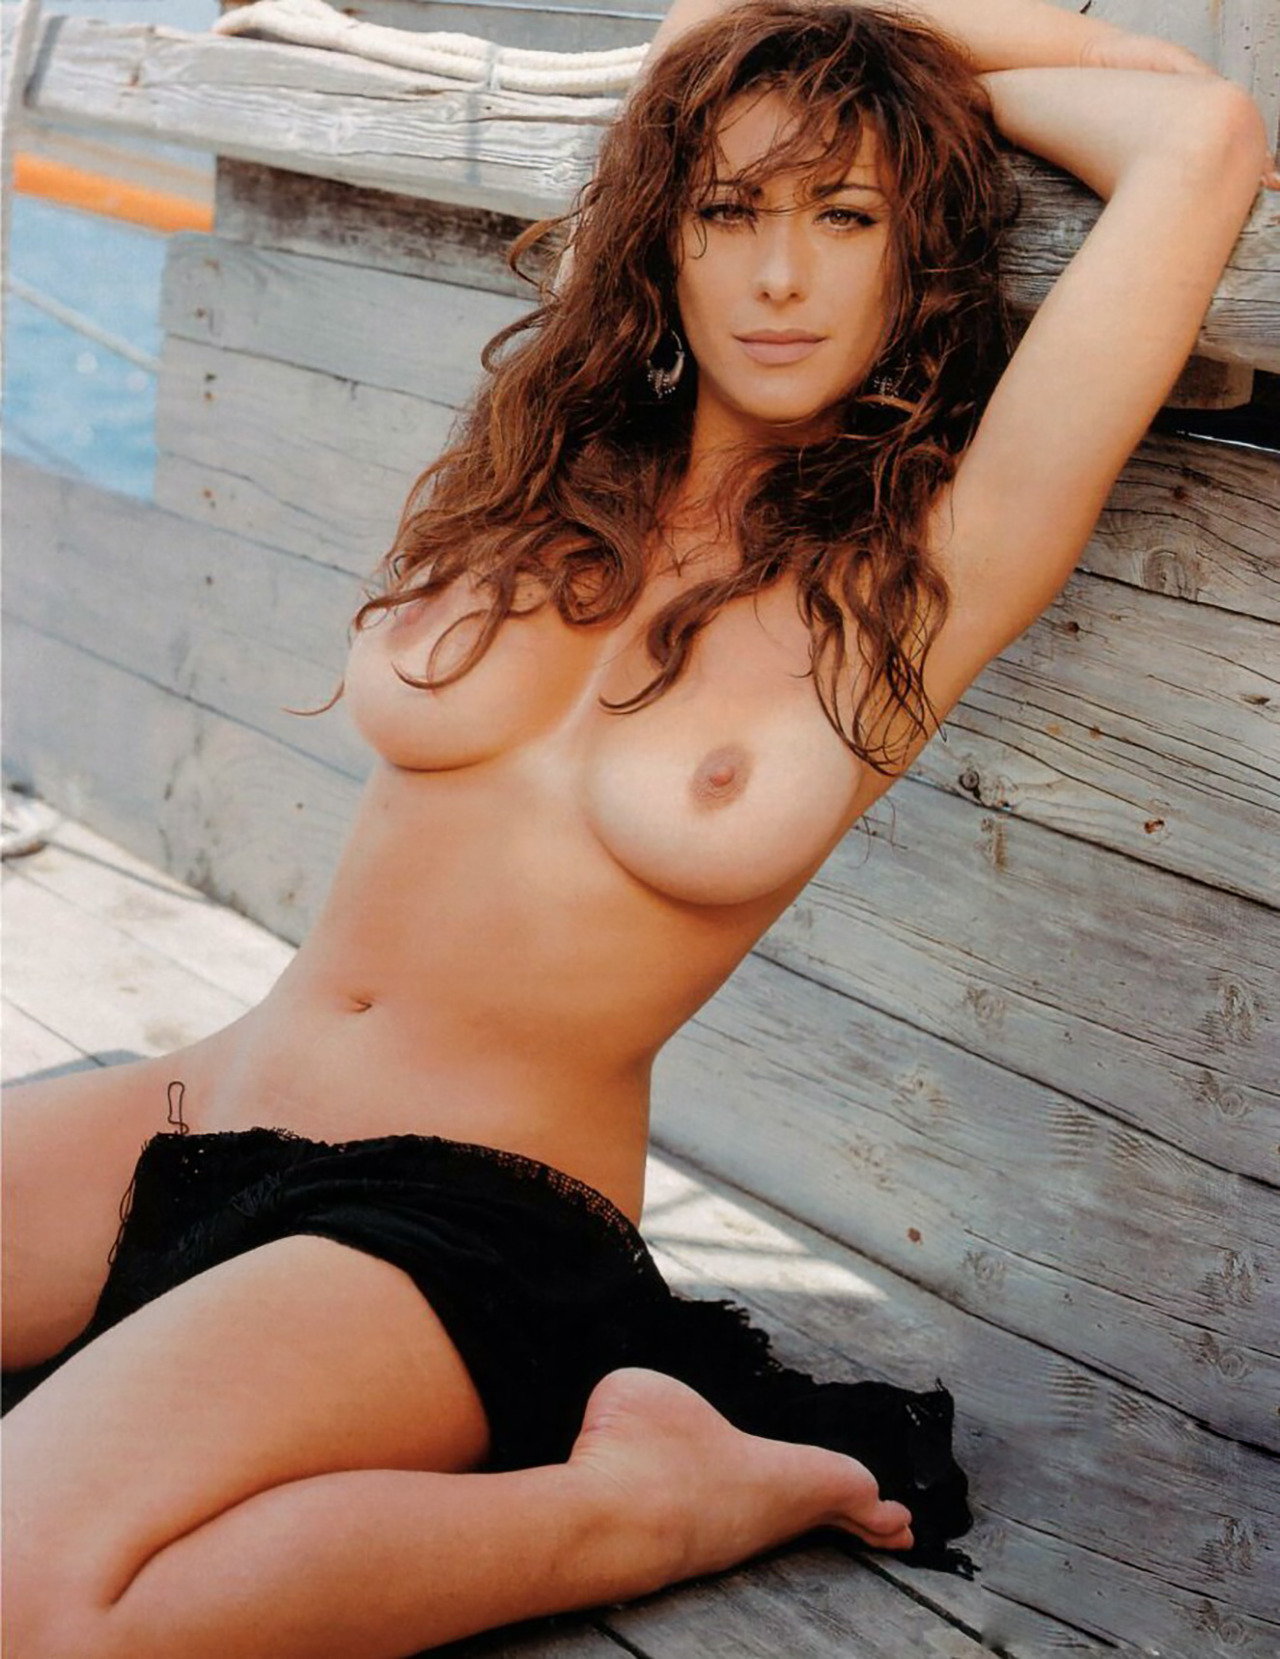 Sabrina salerno full nude site, with